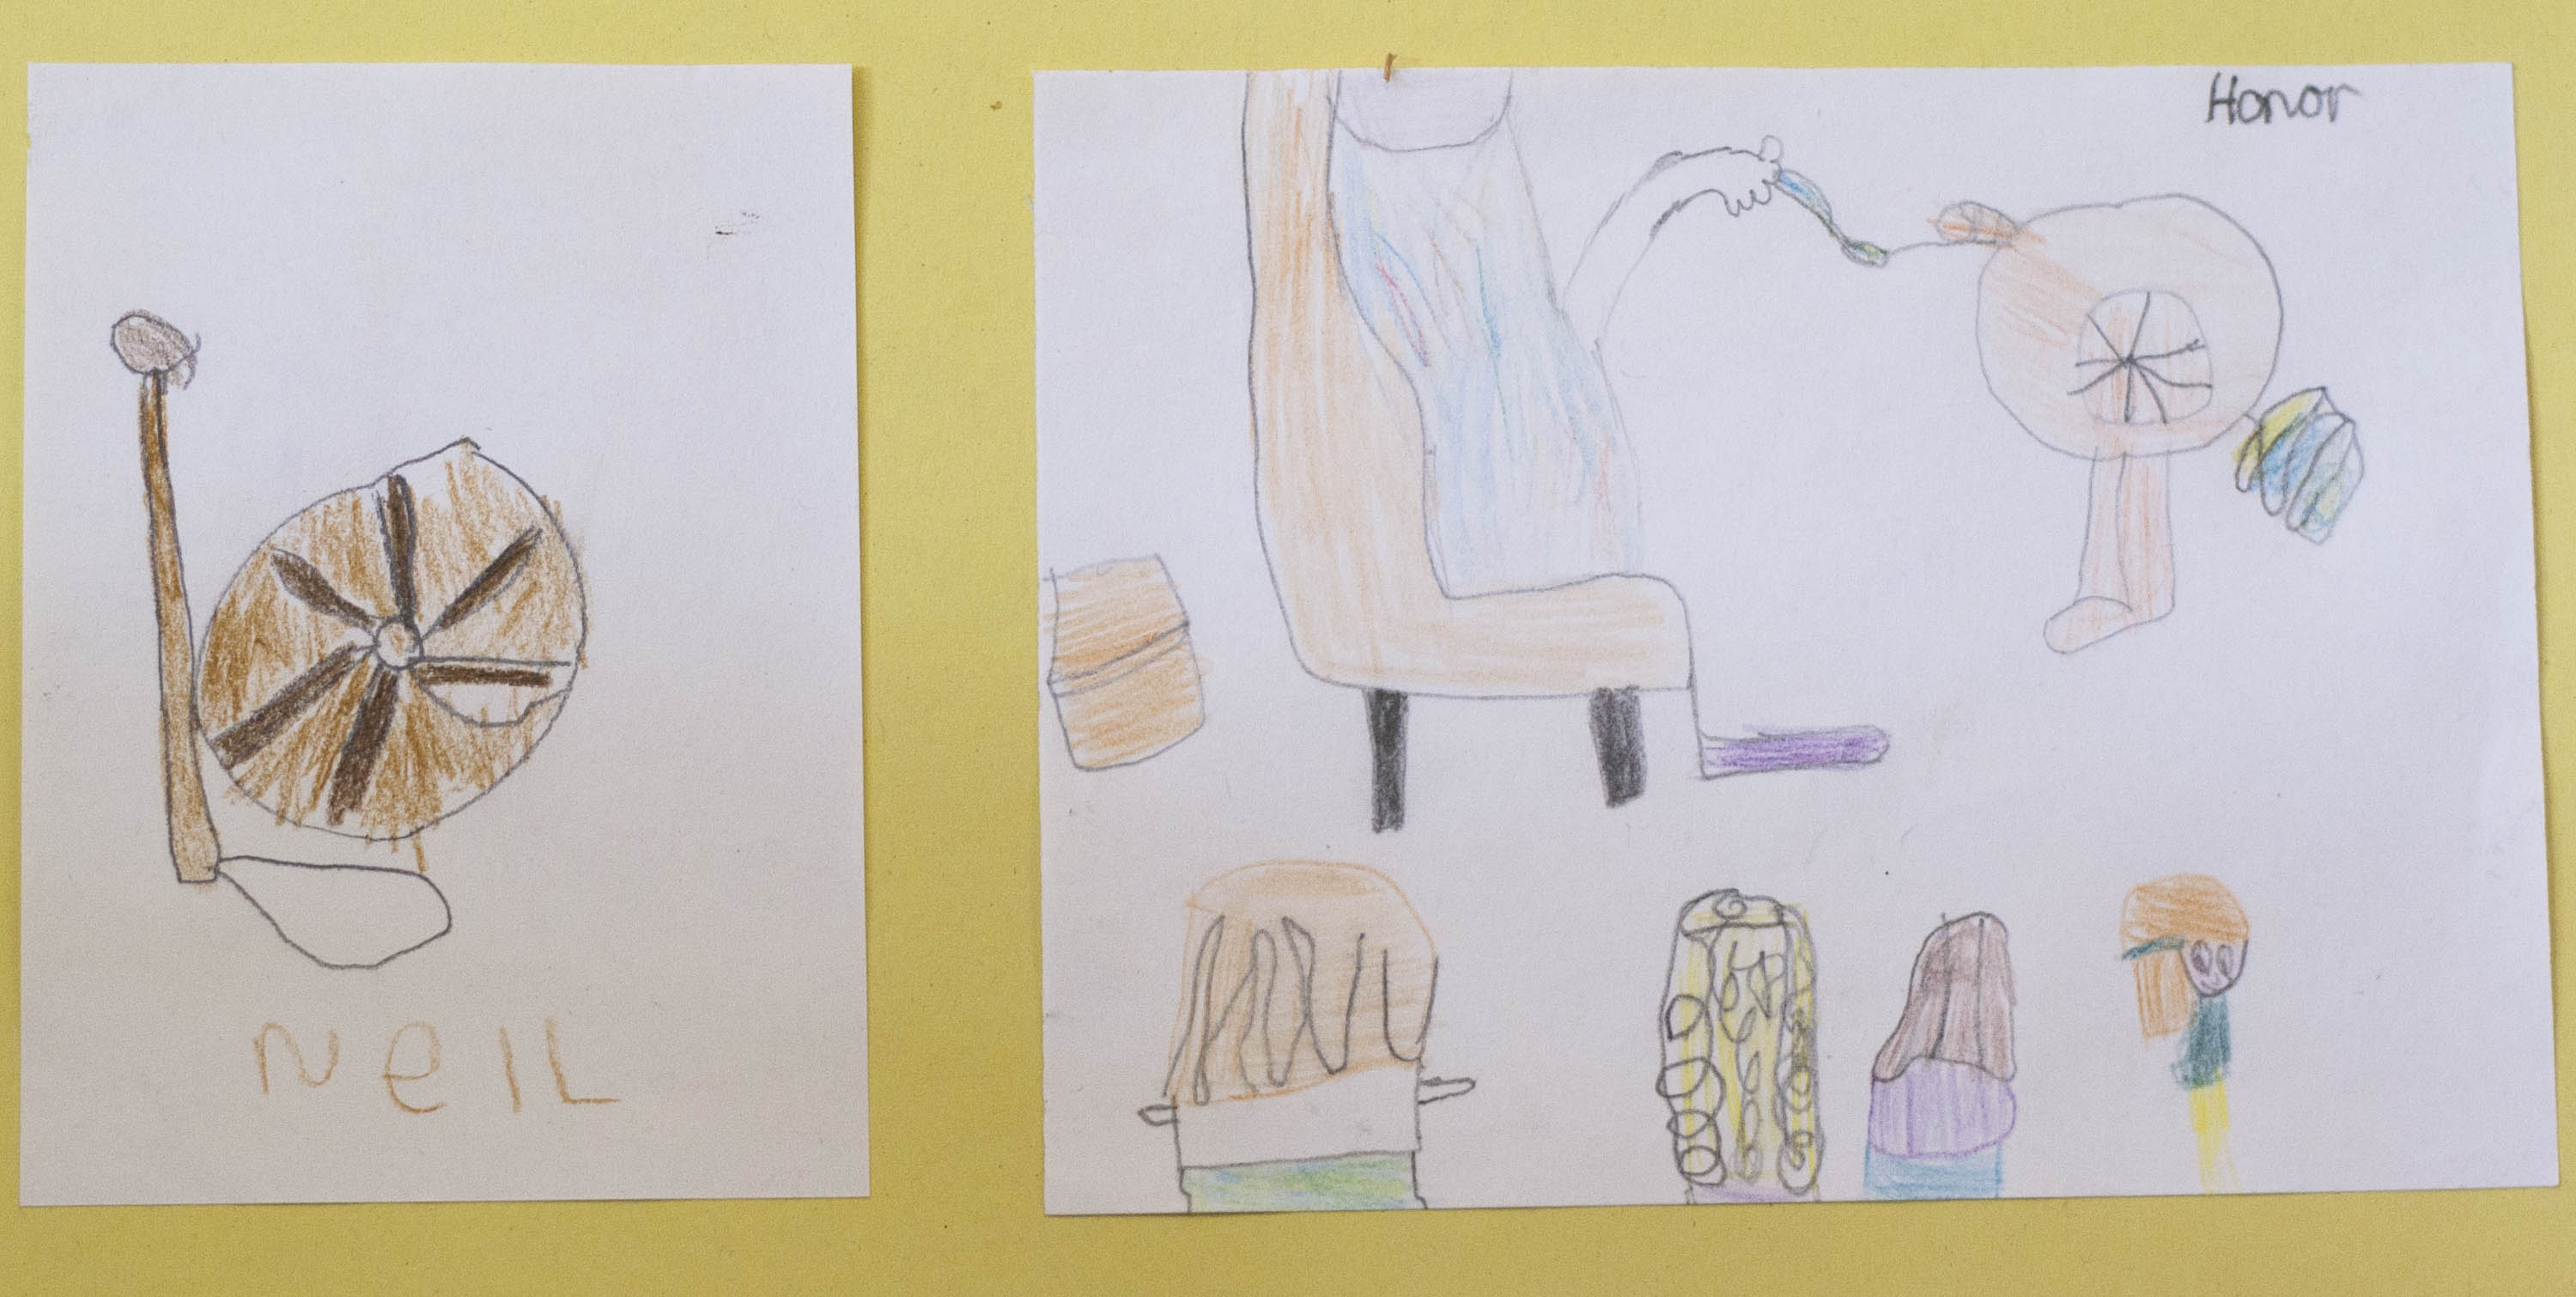 Children's drawings of a spinning wheel and a demonstration of a spinning wheel